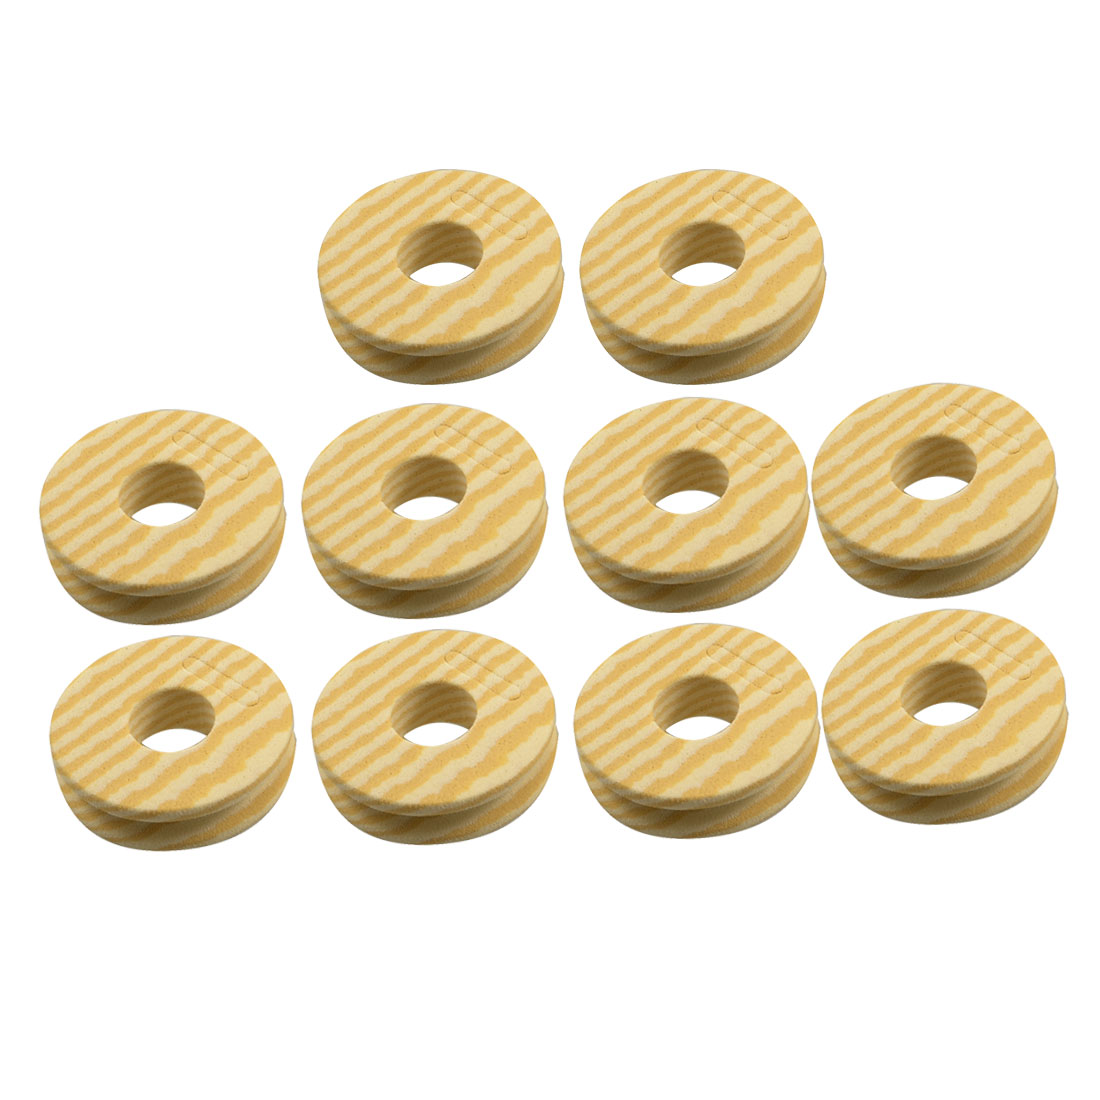 "10 Pcs 0.4"" Tall Fishing Line Foam Bobbin Spools Beige Ecru"